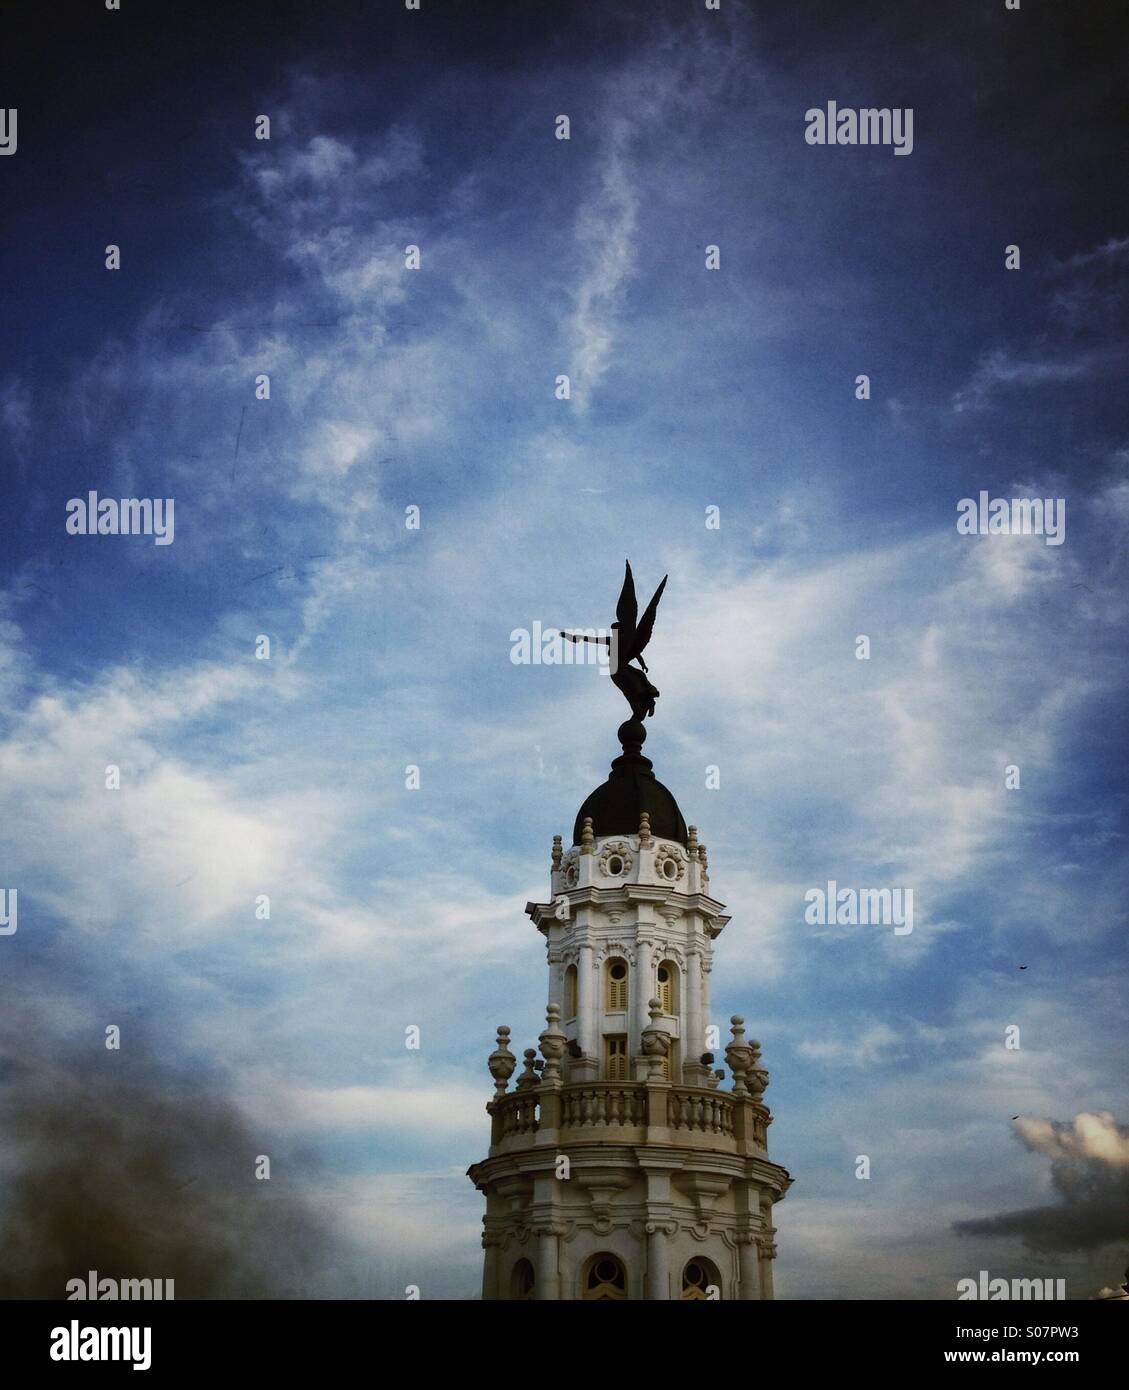 Winged angel statue adorning an ornate tower of The Grand Theatre Havana Cuba - Stock Image